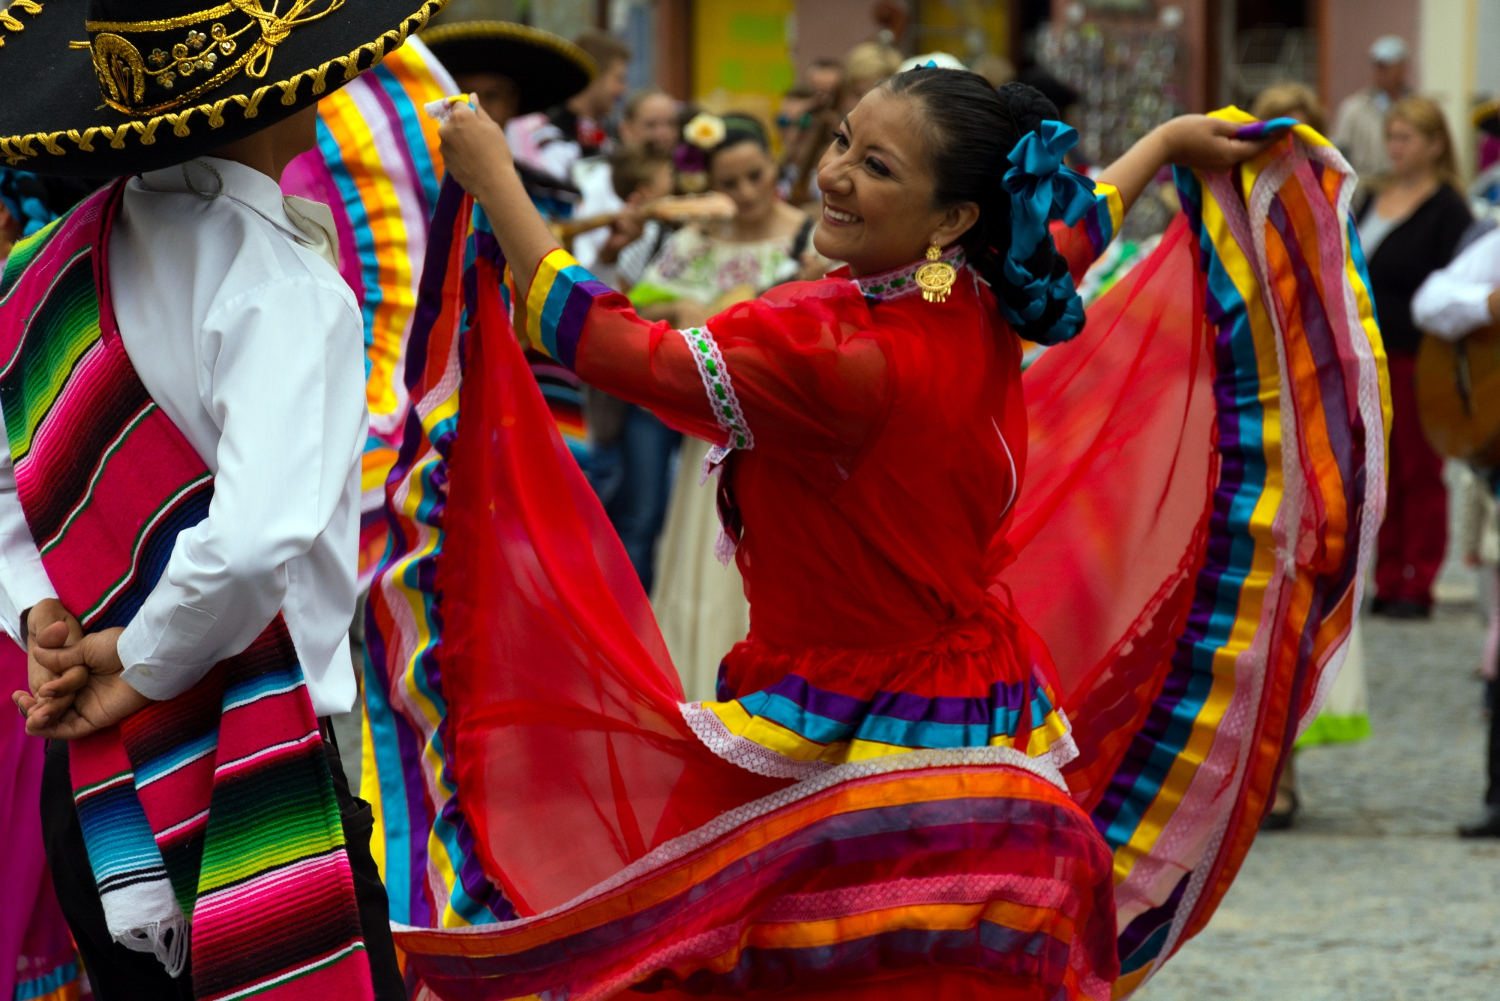 Mexico: Fiesta, Mexico celebrates all year round!